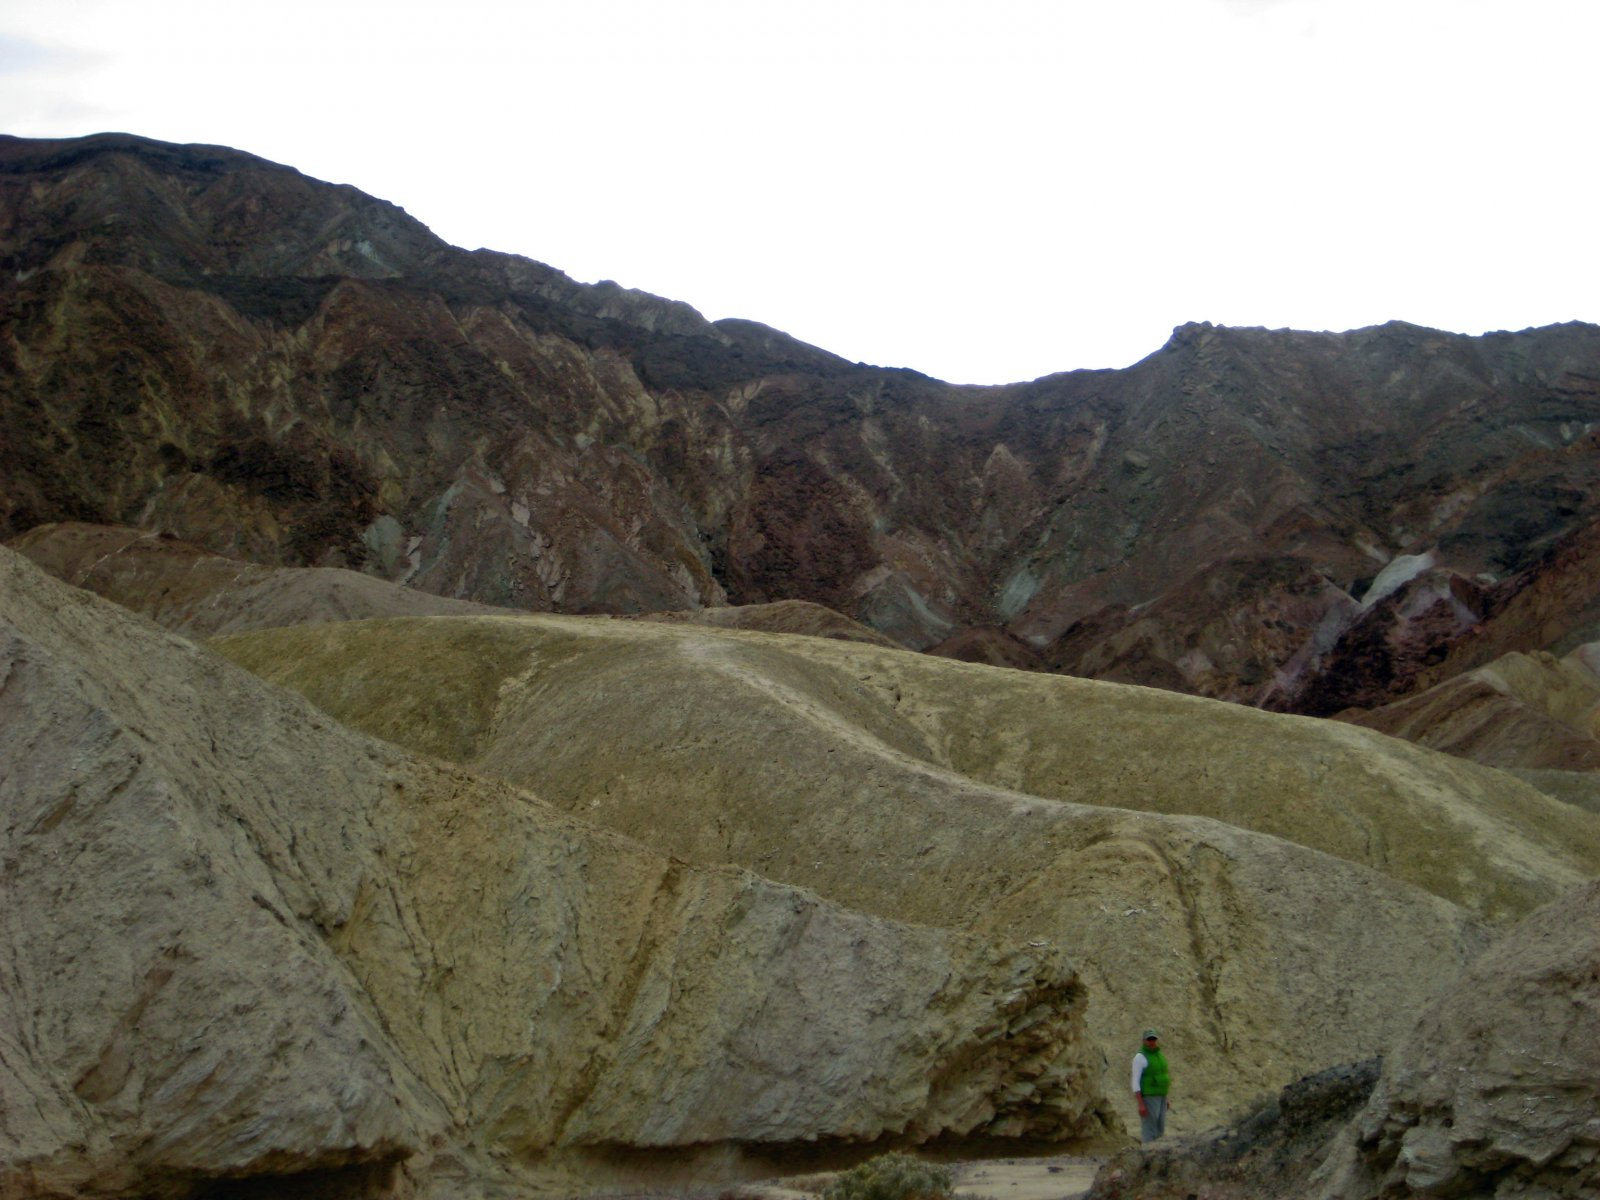 Click image for larger version  Name:Trail above Gower Gulch.jpg Views:72 Size:271.3 KB ID:116598